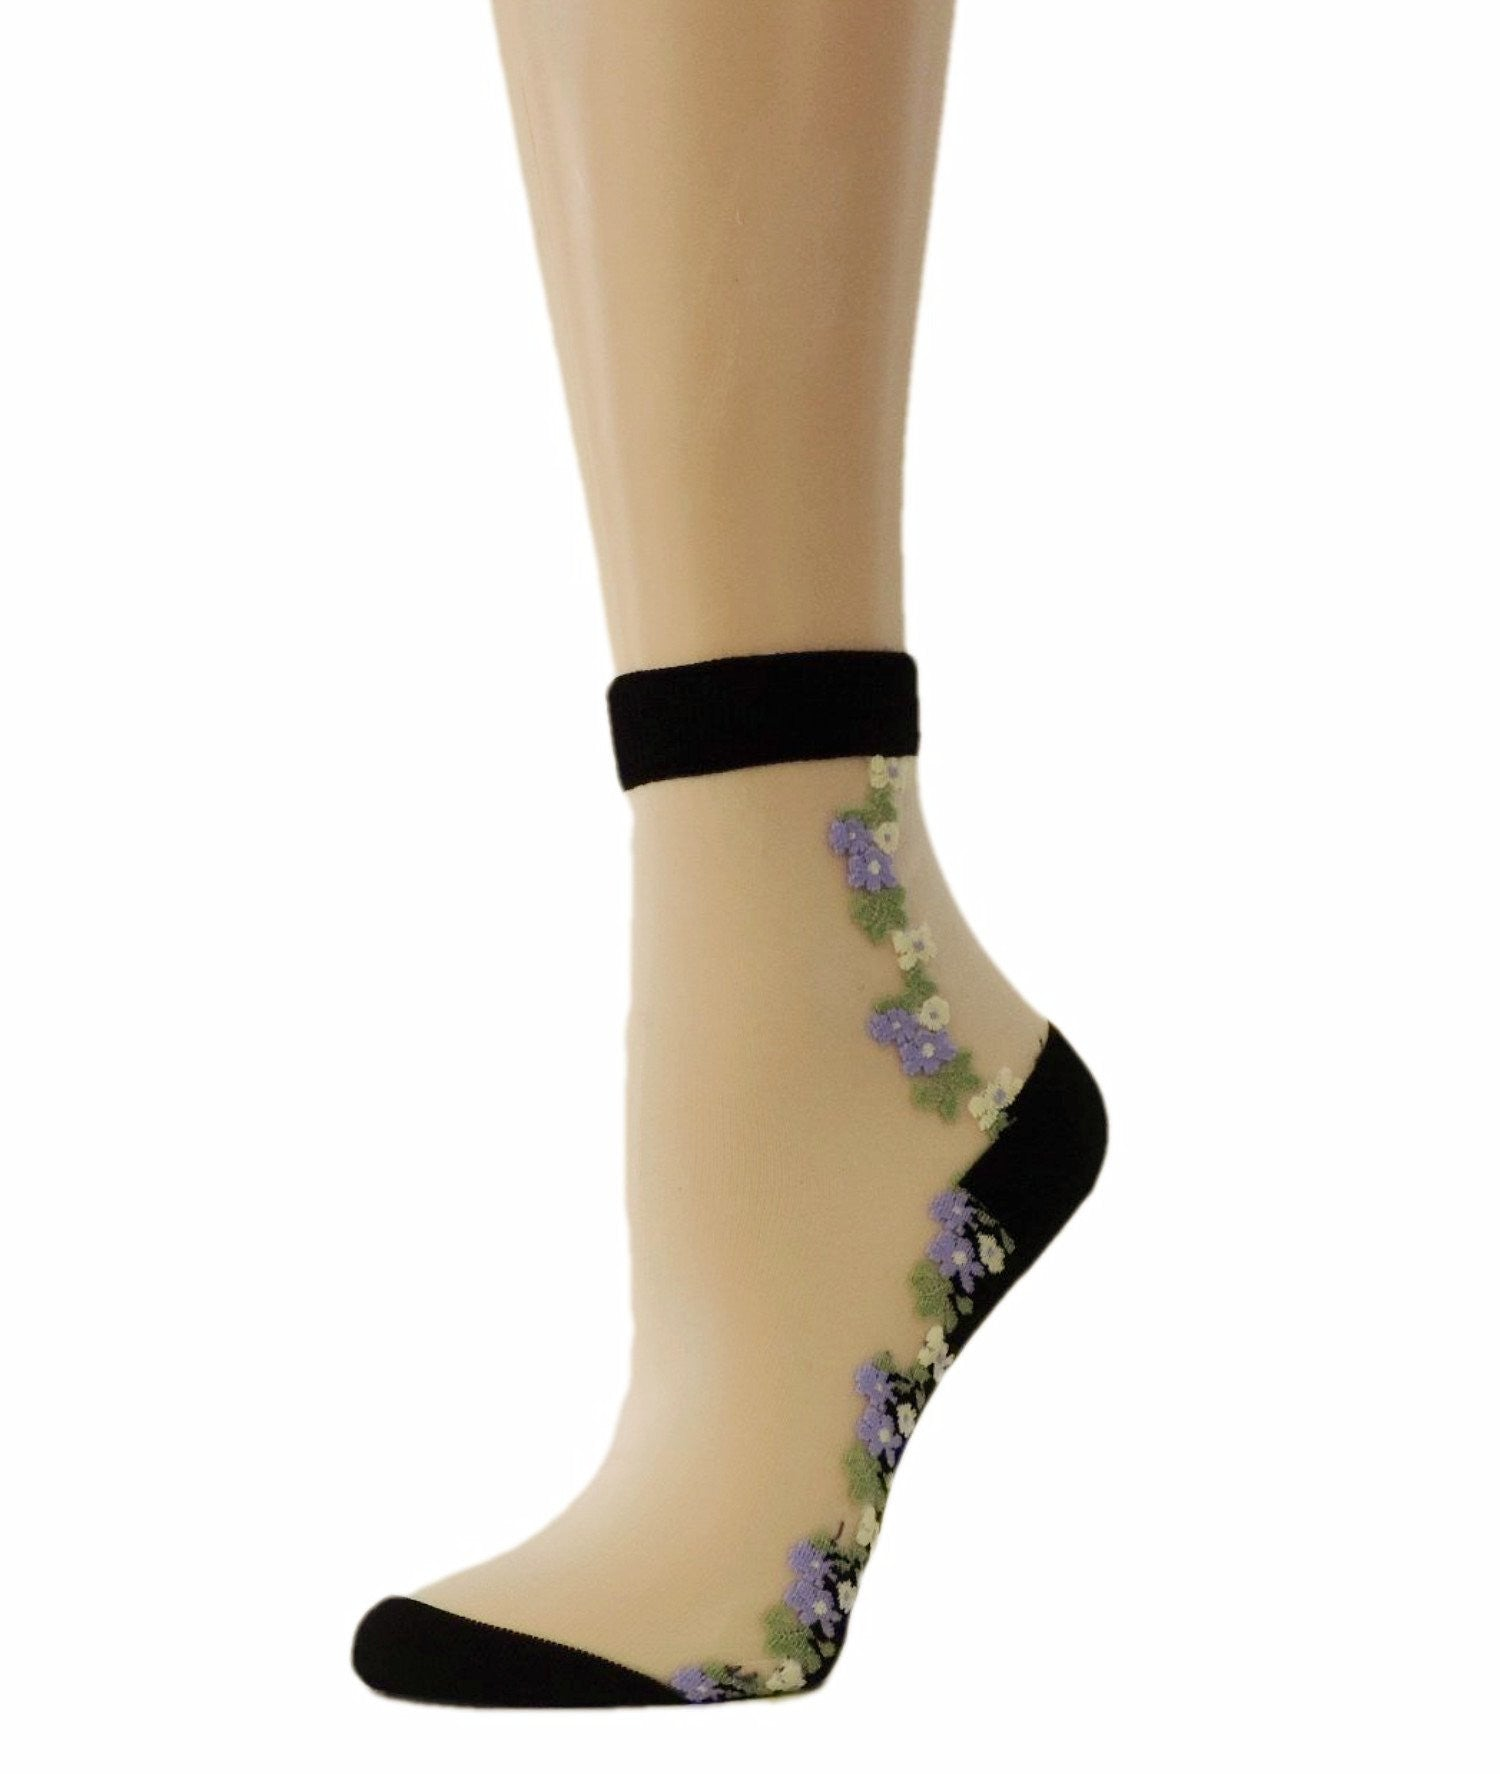 Wild Purple Flowers Sheer Socks - Global Trendz Fashion®